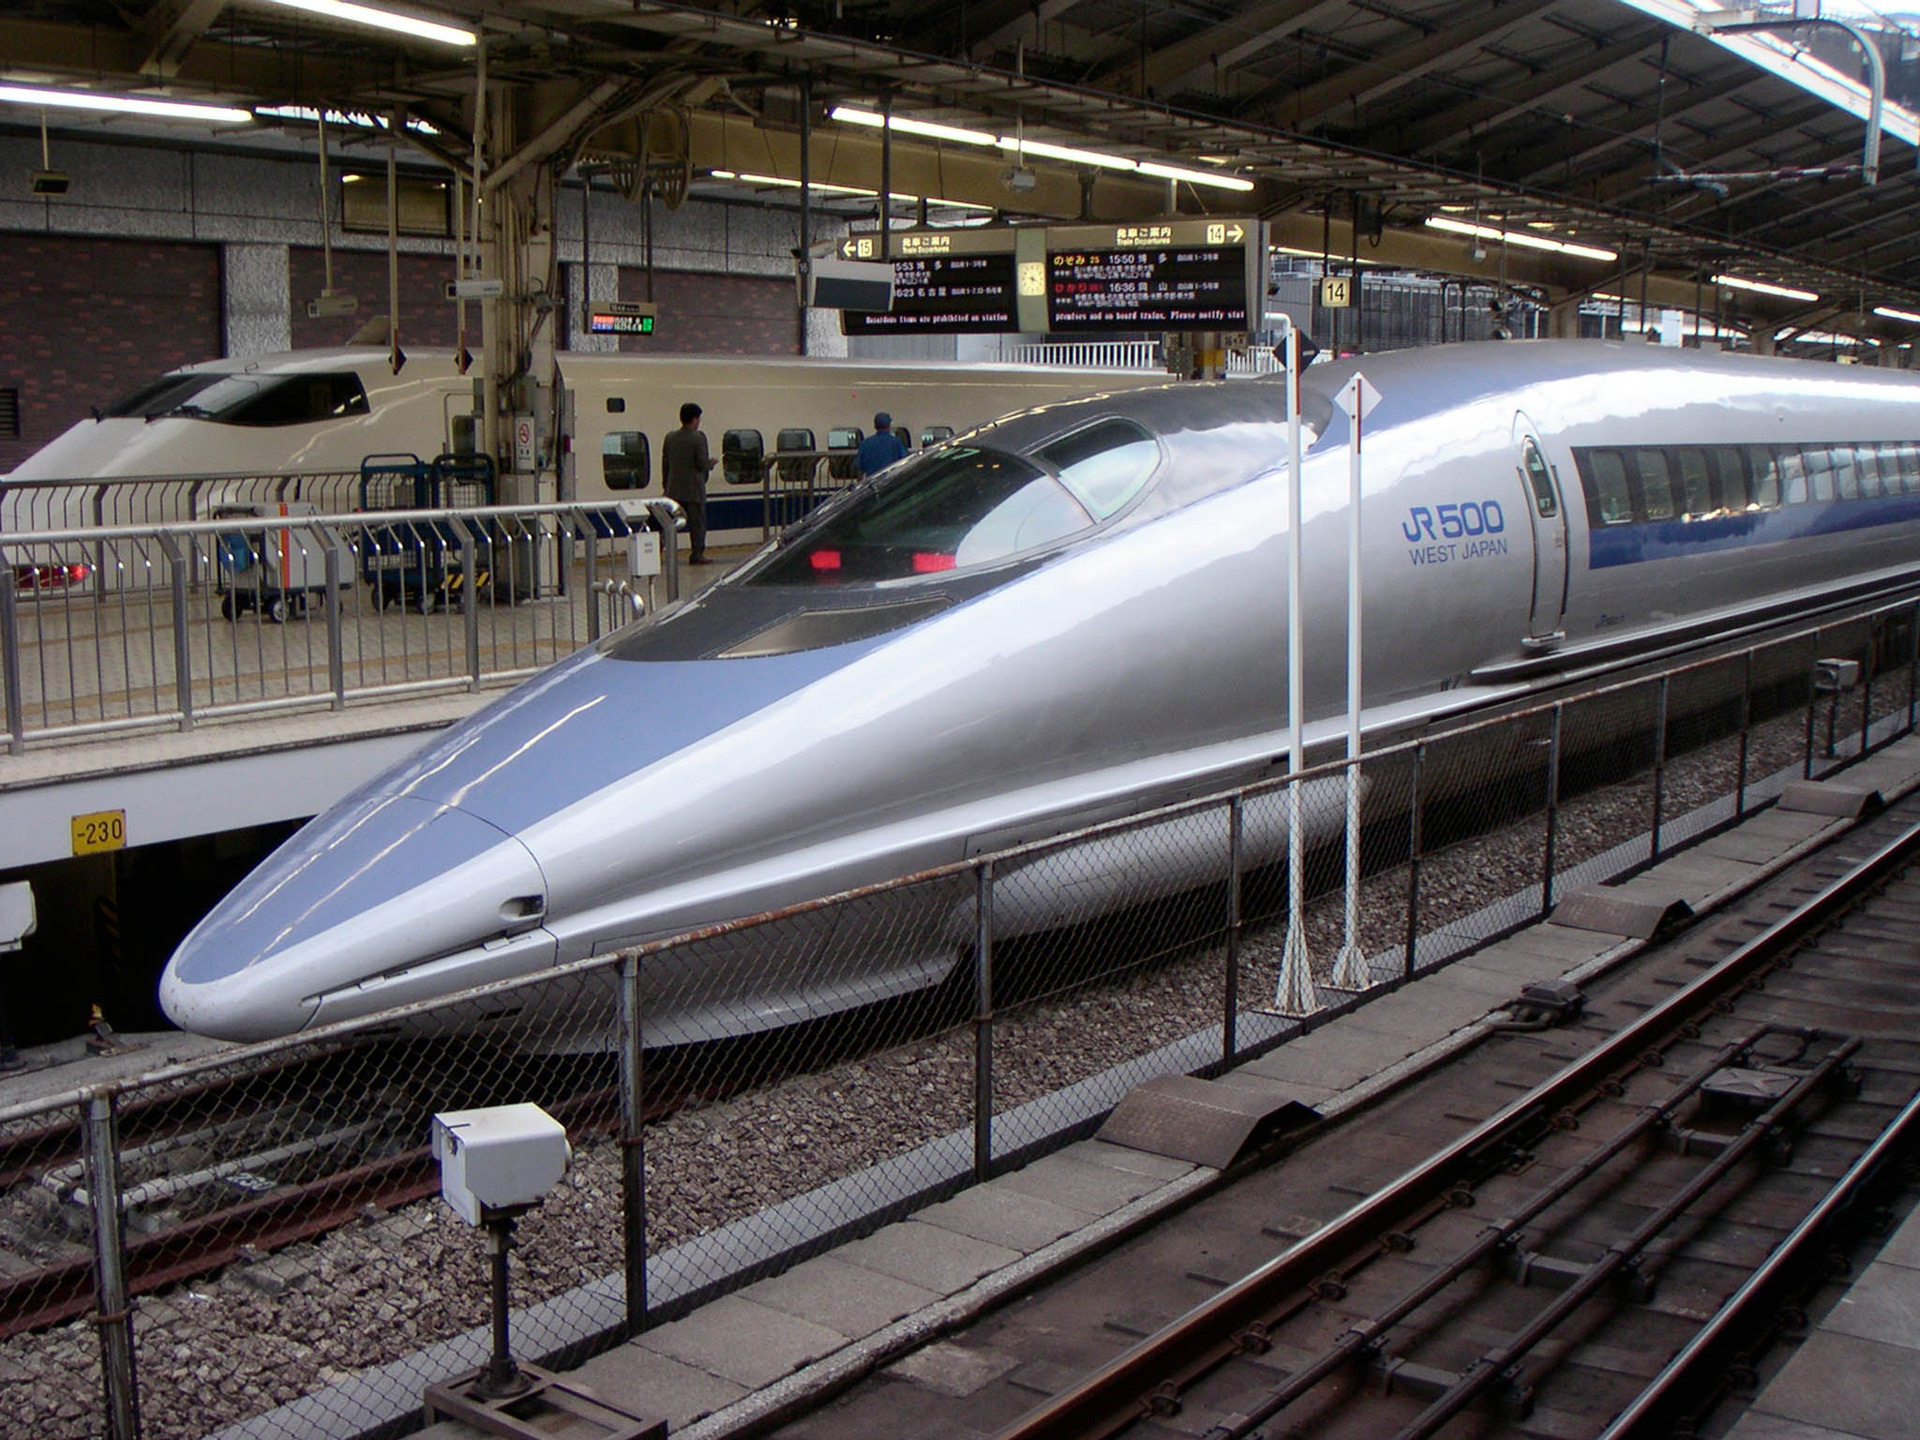 japanese_shinkansen_train_1920x1440.jpg